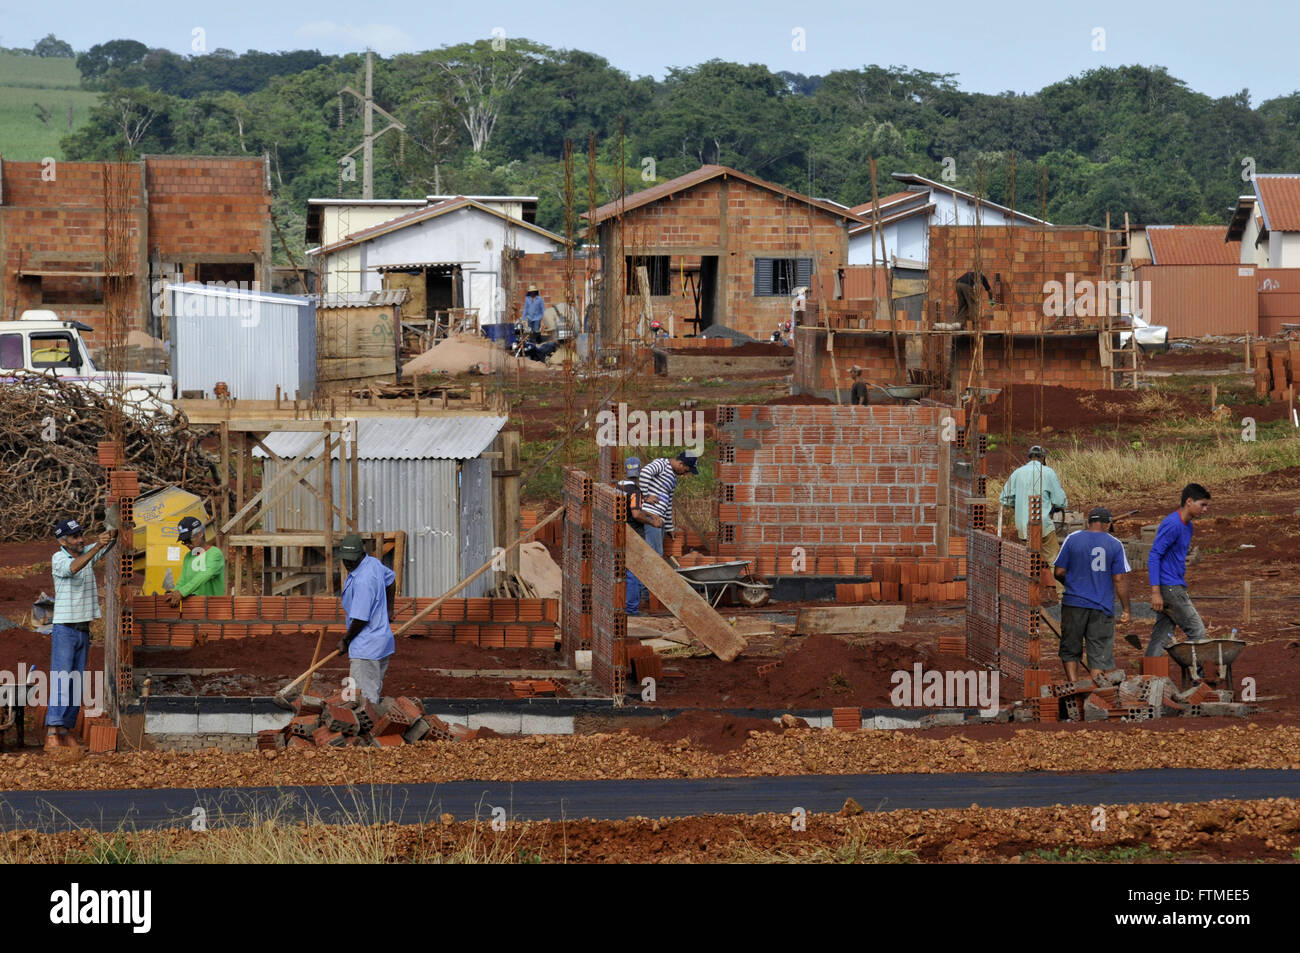 Construction of affordable housing - Stock Image